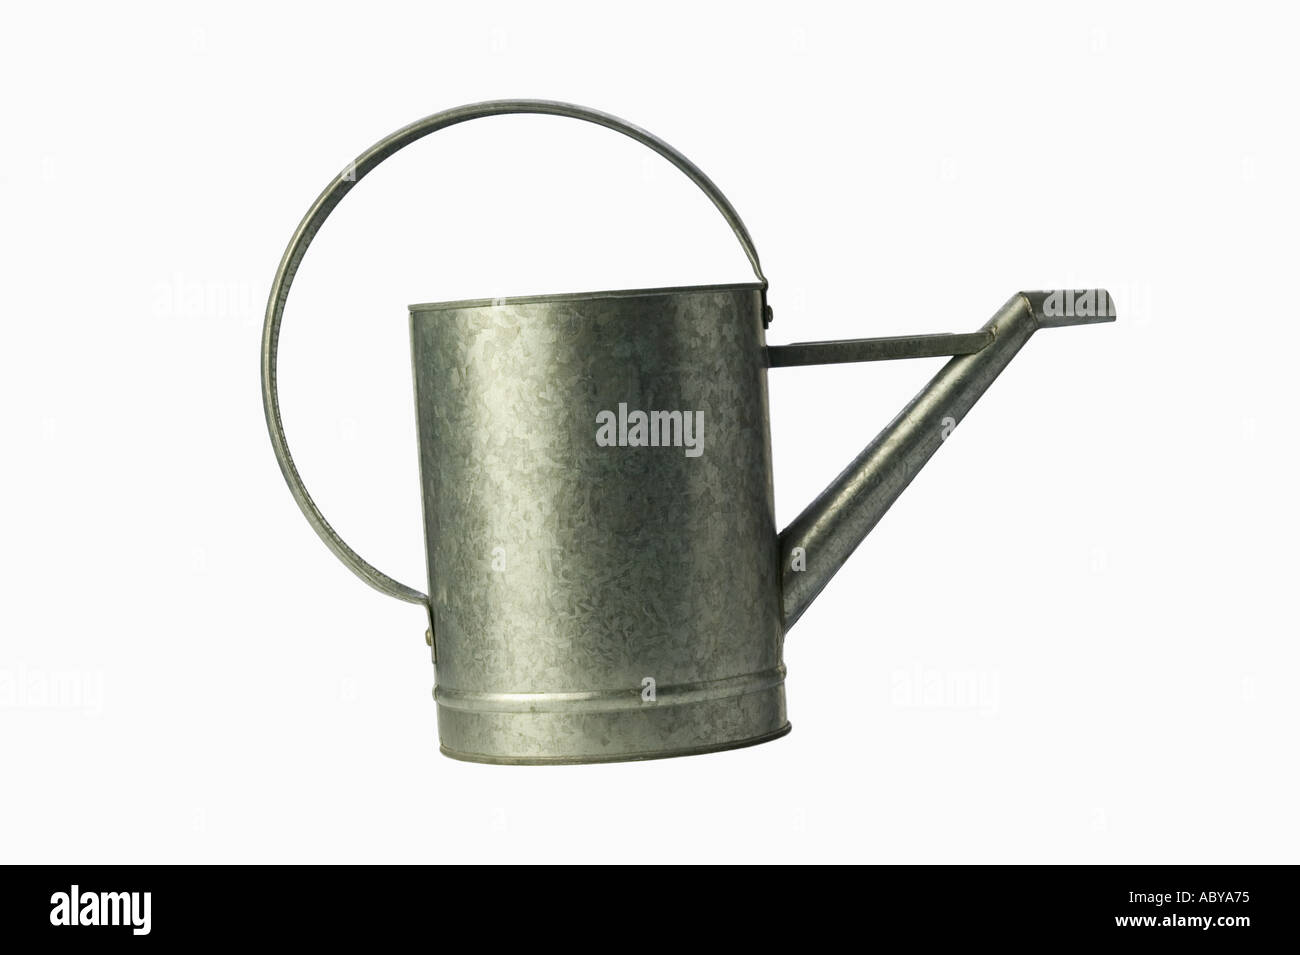 Still life of a galvanize steel watering can on white background - Stock Image